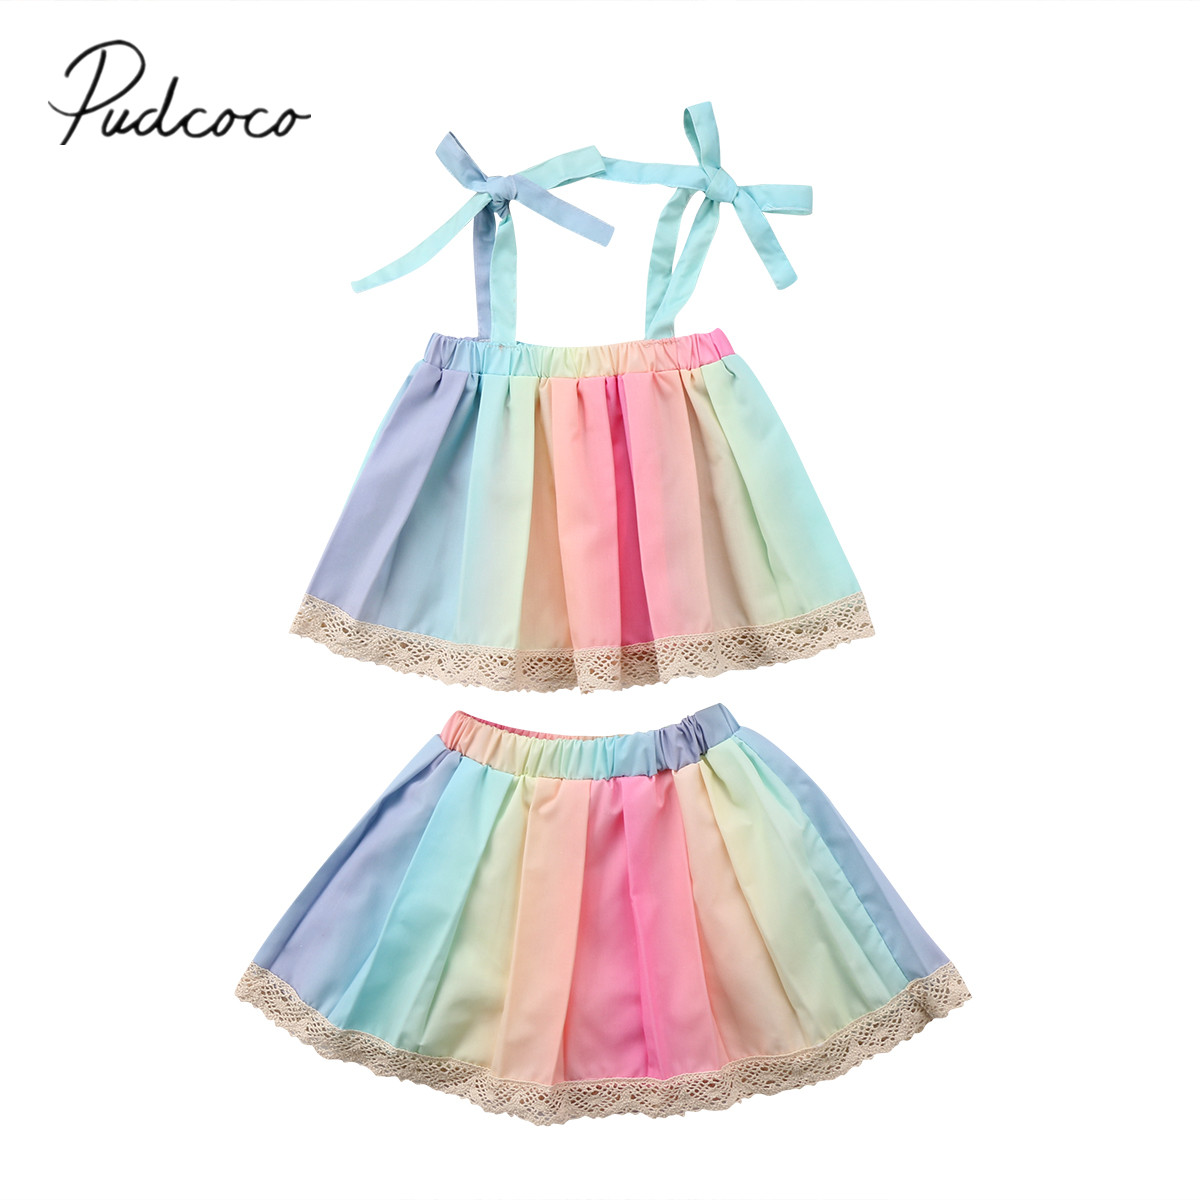 2018 Brand New 2PCS Toddler Infant Kids Baby Girl Outfits Tank Tops Tutu Skirt Sets Lace Rainbow Colorful Summer Clothes 1-5T new born baby girl clothes leopard 3pcs suit rompers tutu skirt dress headband hat fashion kids infant clothing sets